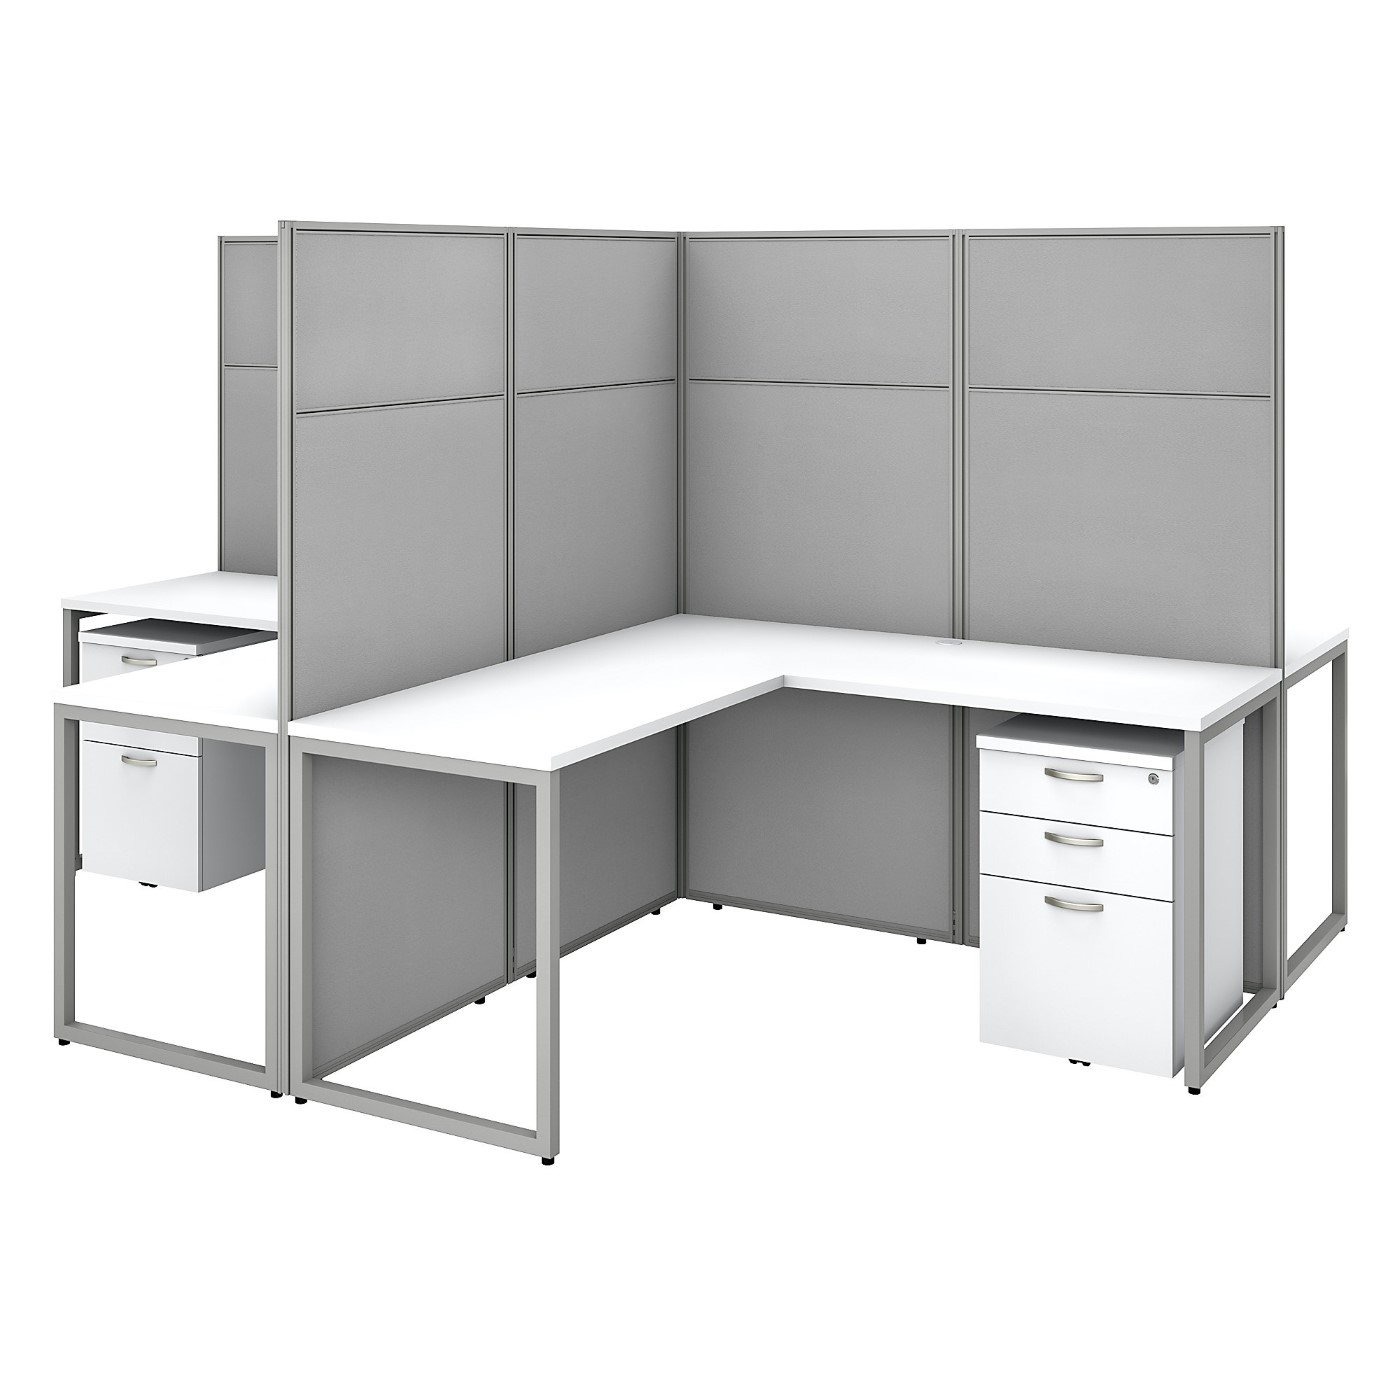 BUSH BUSINESS FURNITURE EASY OFFICE 60W 4 PERSON L SHAPED CUBICLE DESK WITH DRAWERS AND 66H PANELS. FREE SHIPPING